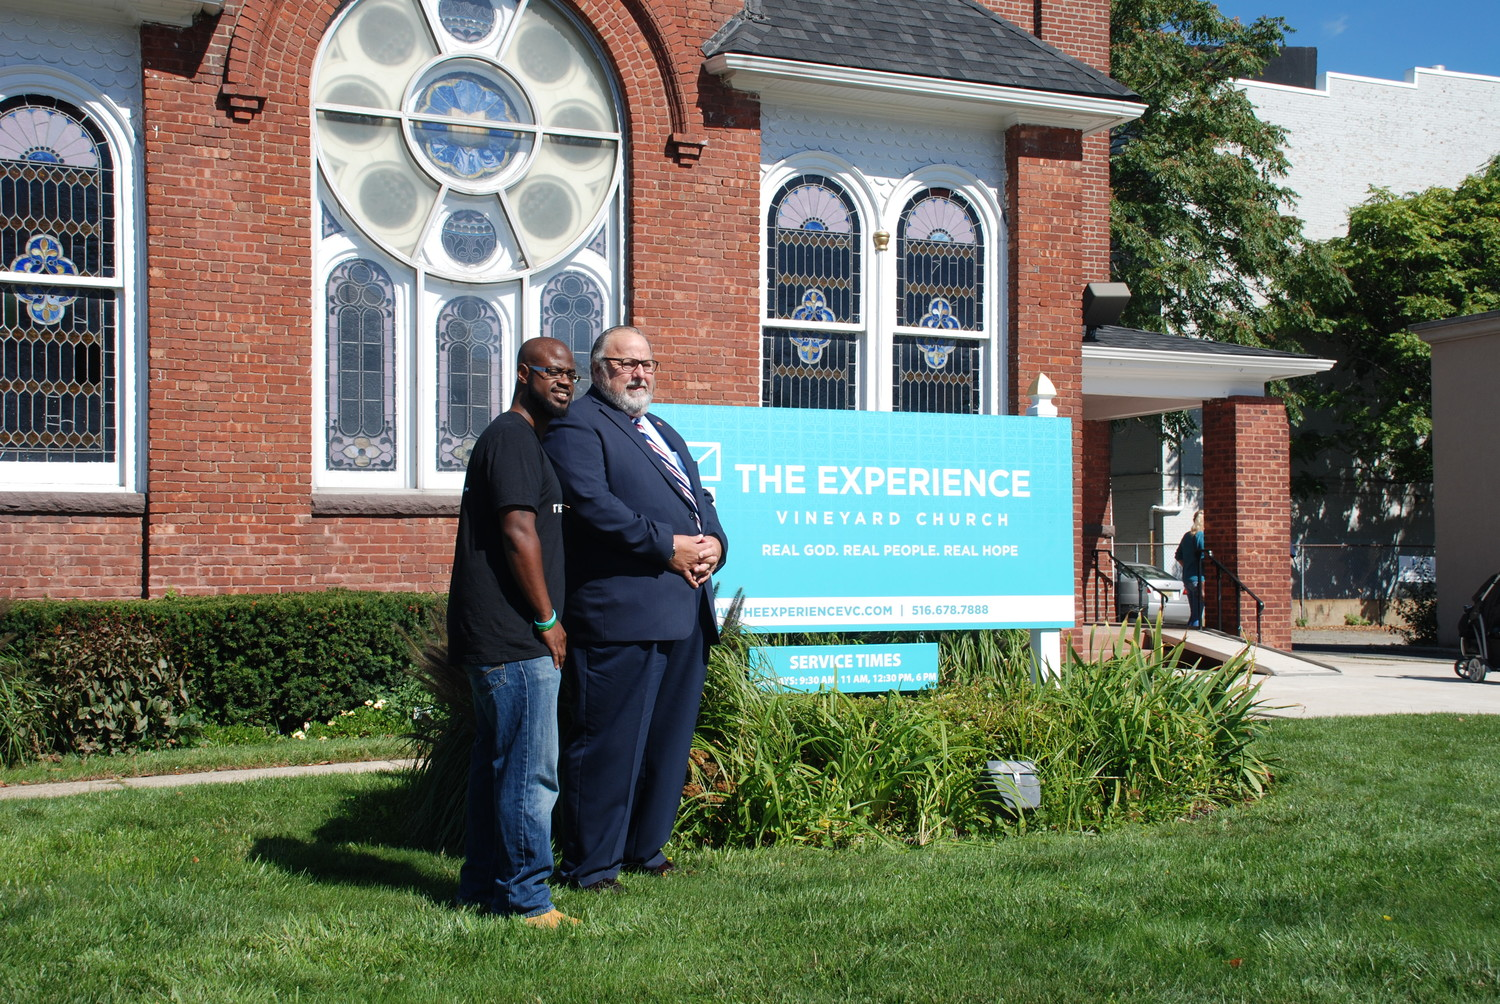 The Rev. Ray Longwood and Mayor Francis X. Murray posed by the new Experience Vineyard Church sign.